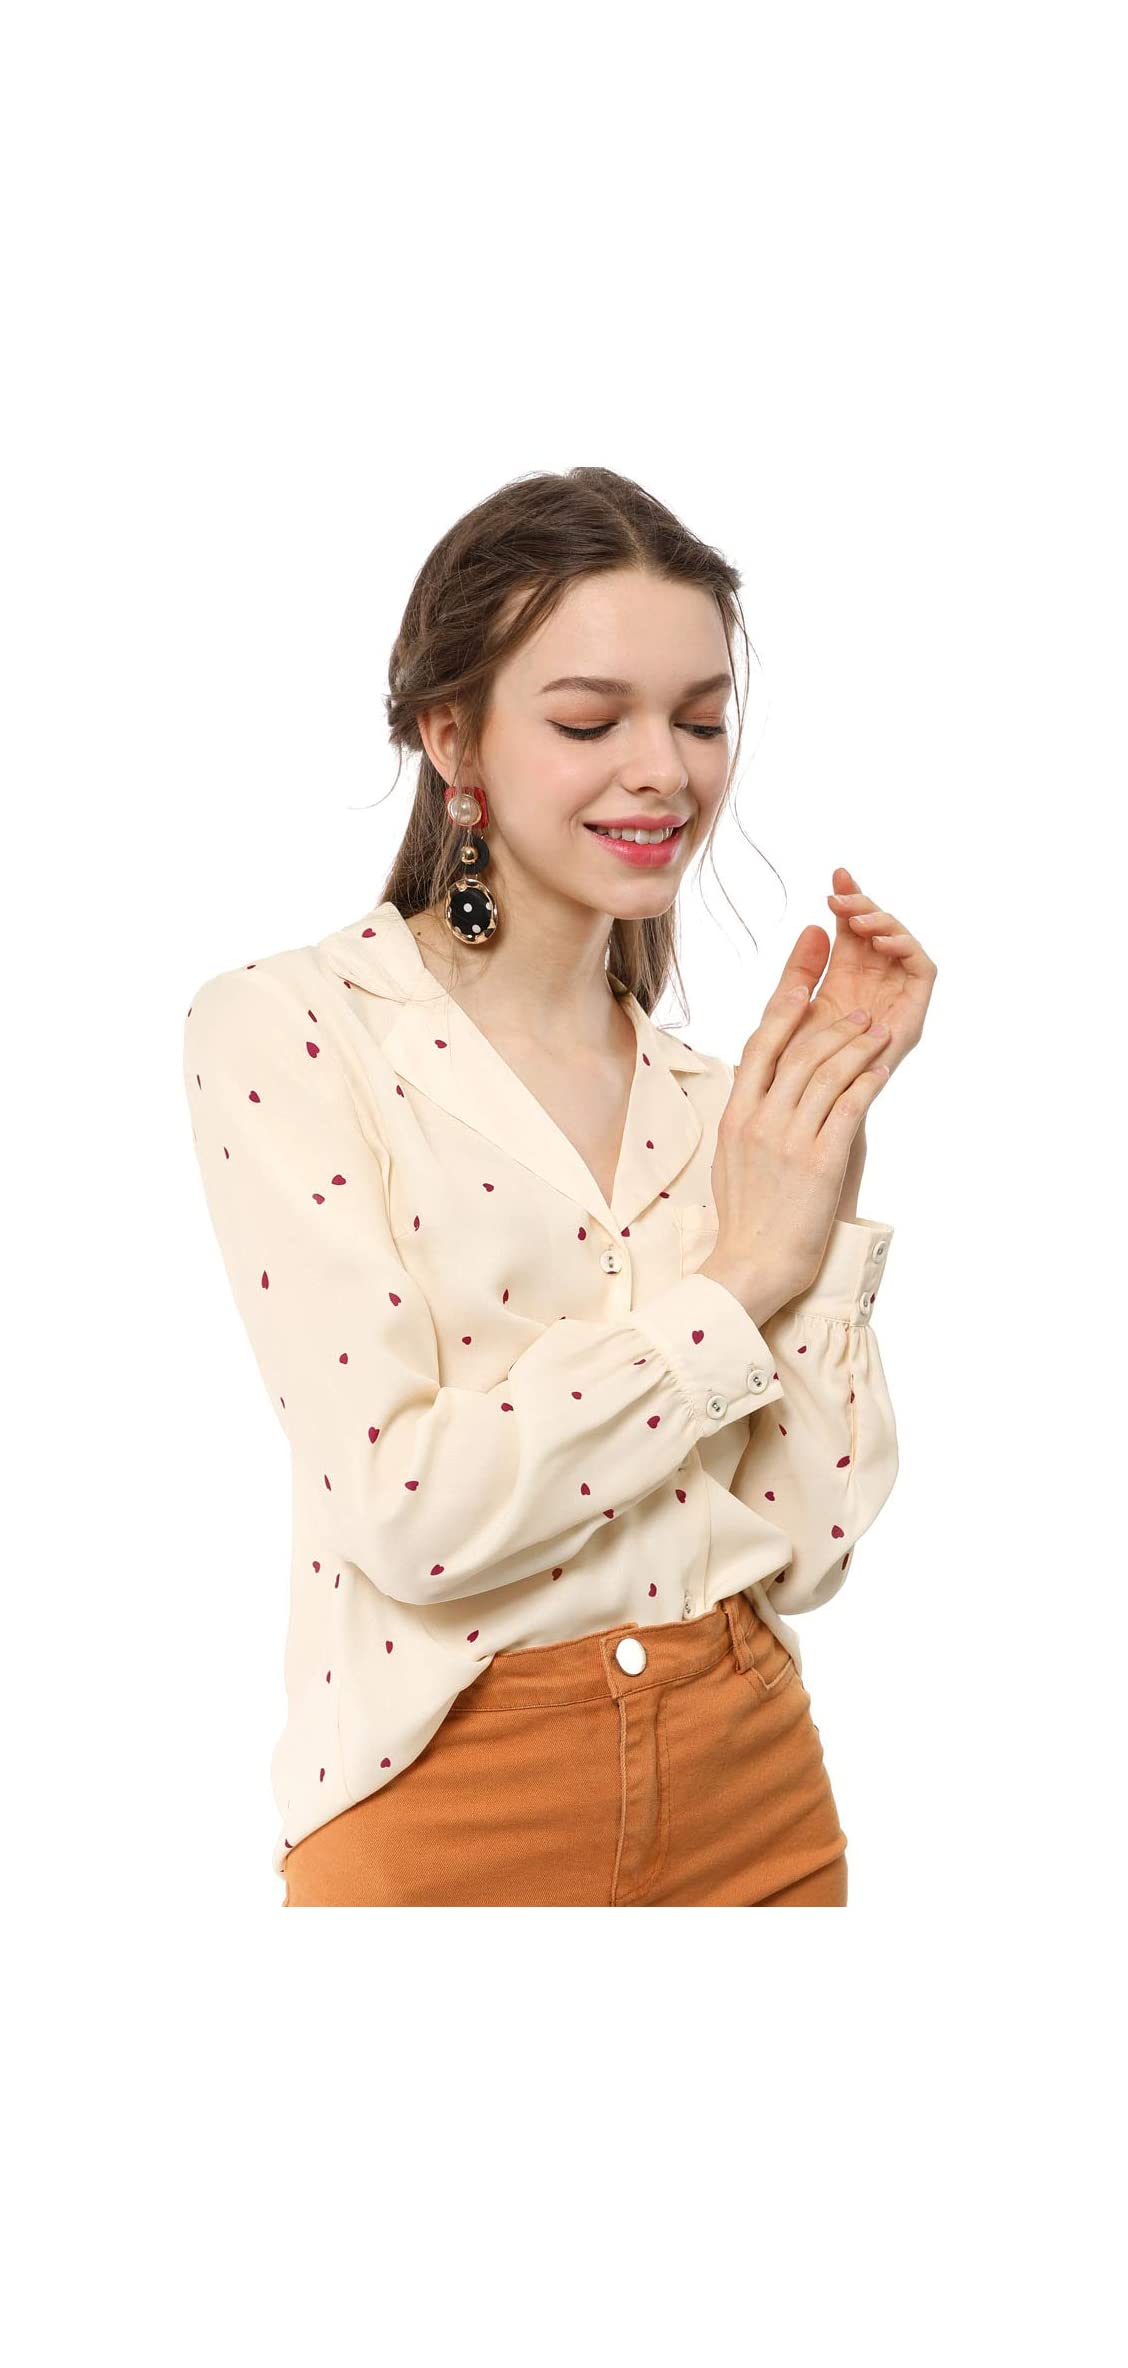 Women's Heart Polka Dots Button Up Notched Lapel V